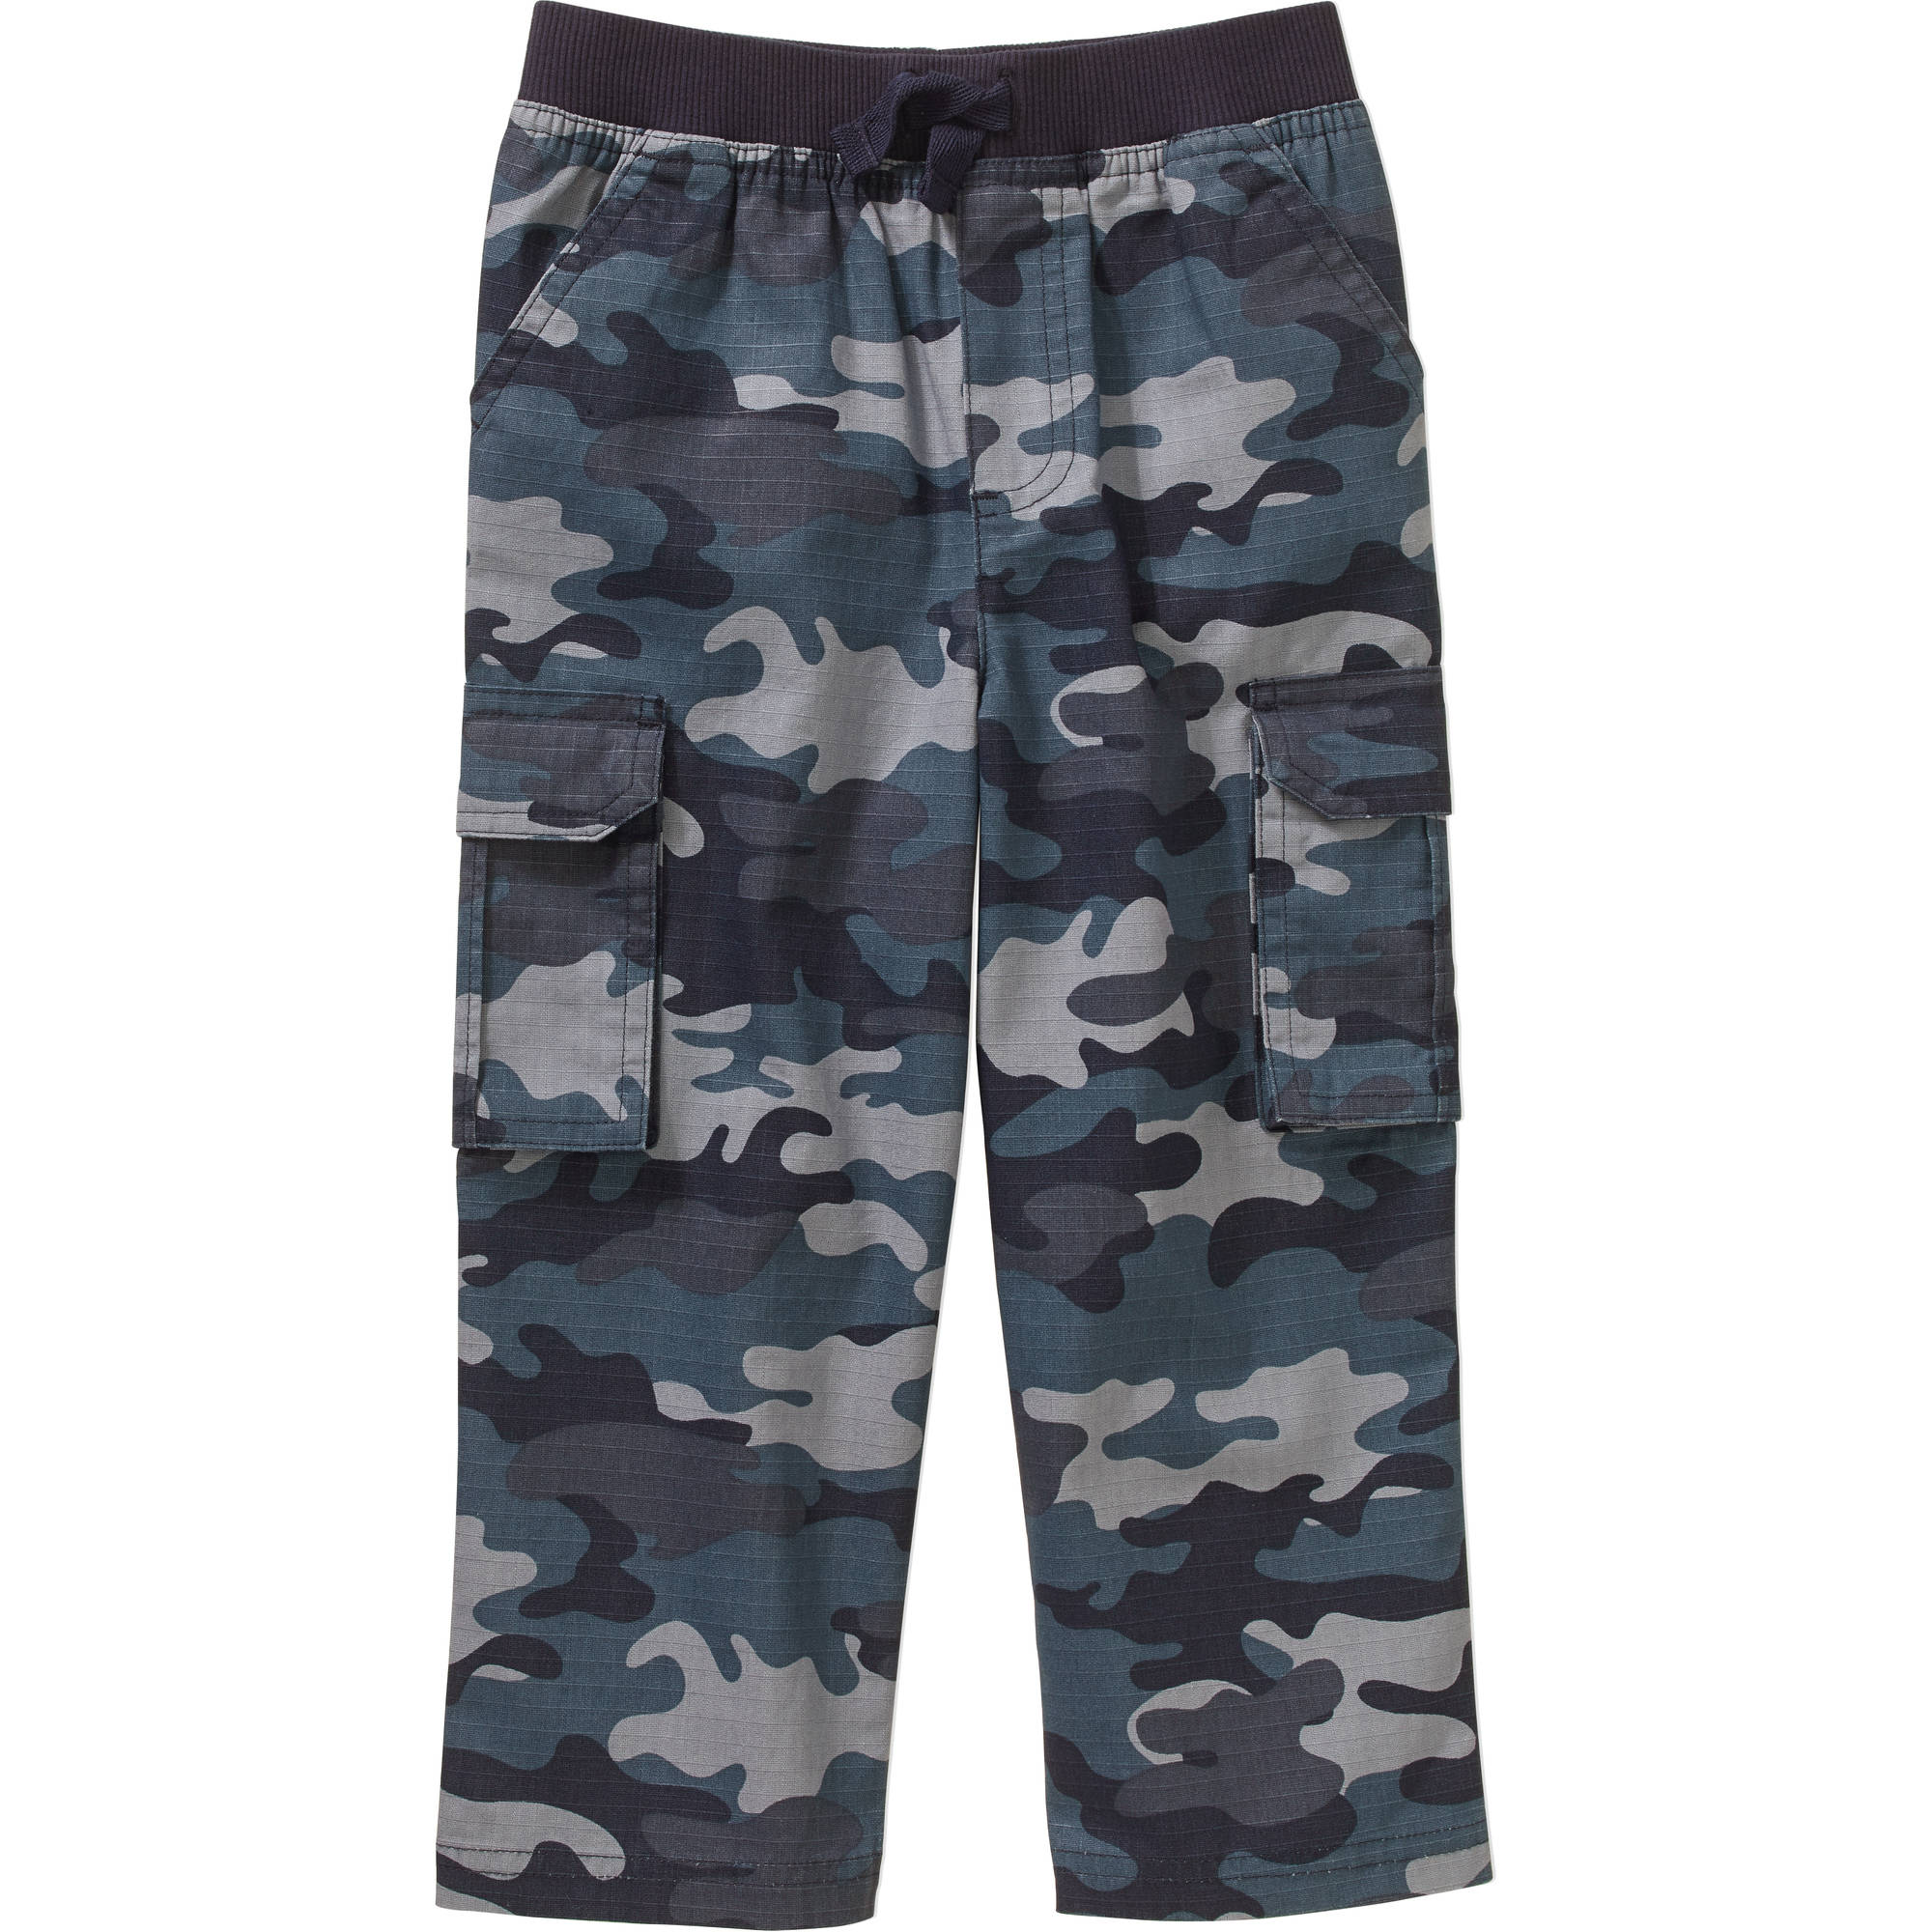 Garanimals Baby Toddler Boy Printed Ripstop Cargo Pants